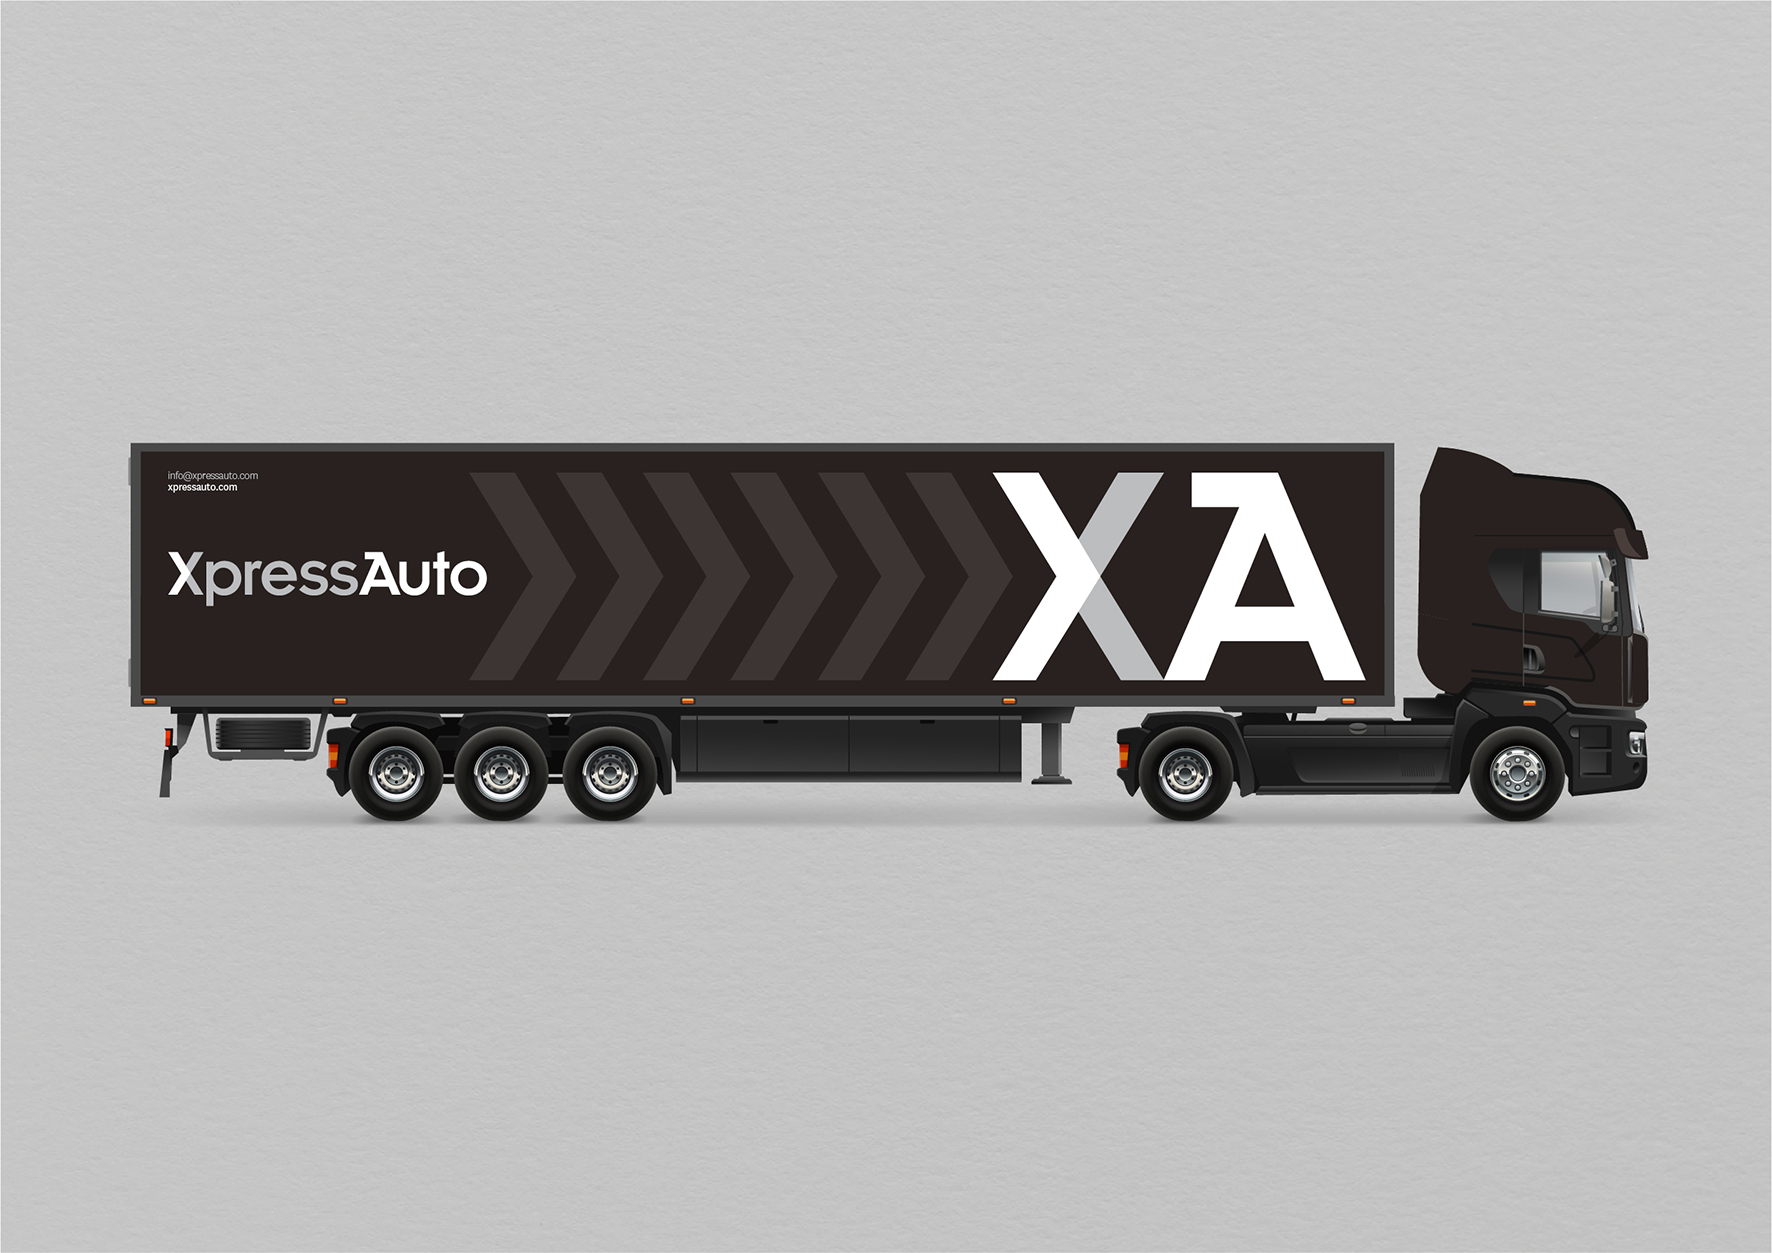 Xpress Auto –  Full brand identity developed for Xpress Auto